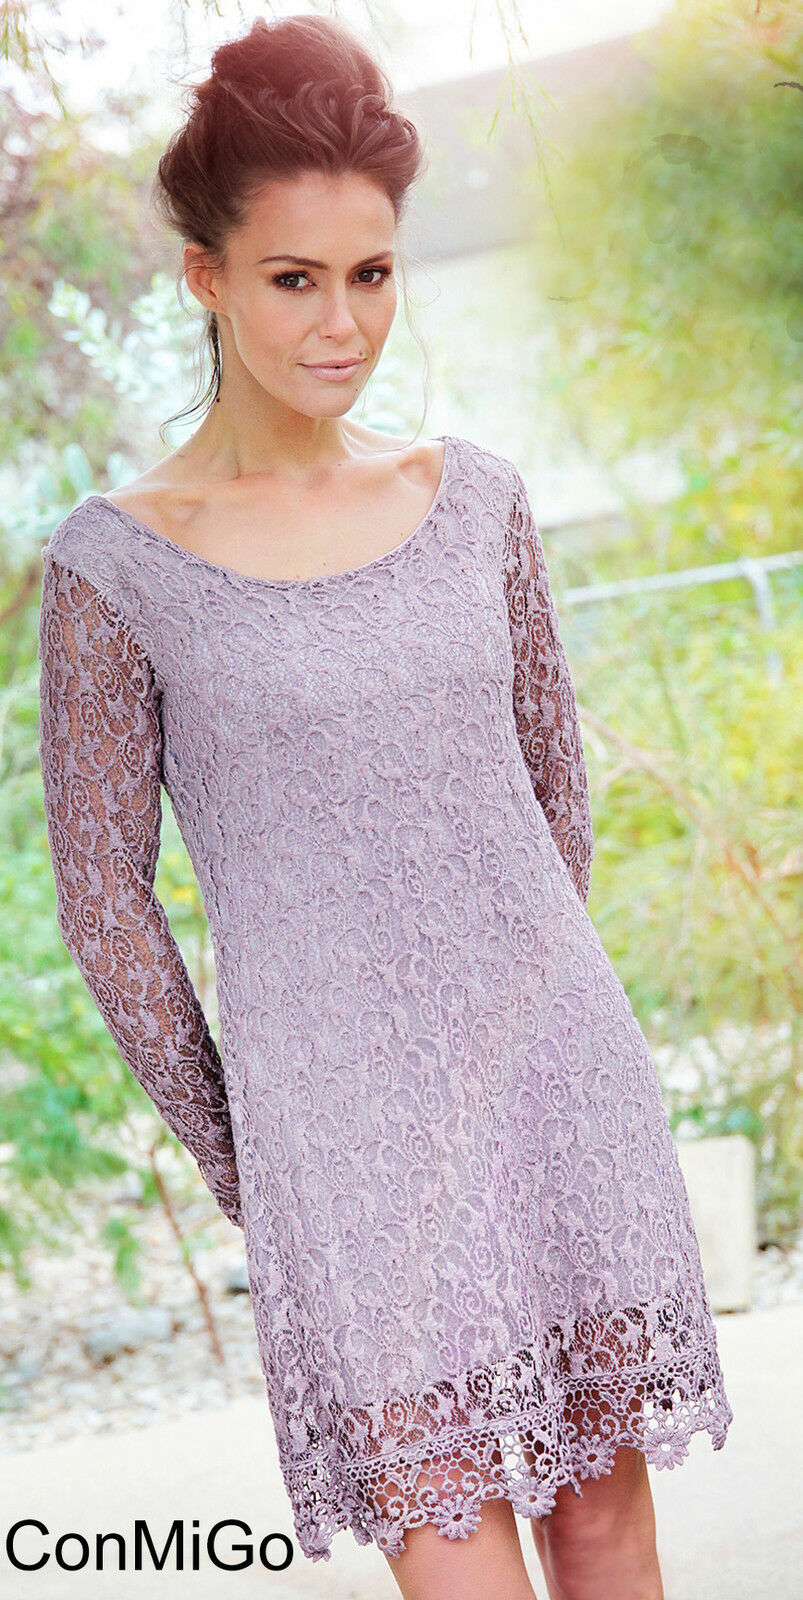 Wedding Party Dress -  Flattering lace dress - Dusky Pink - Made in